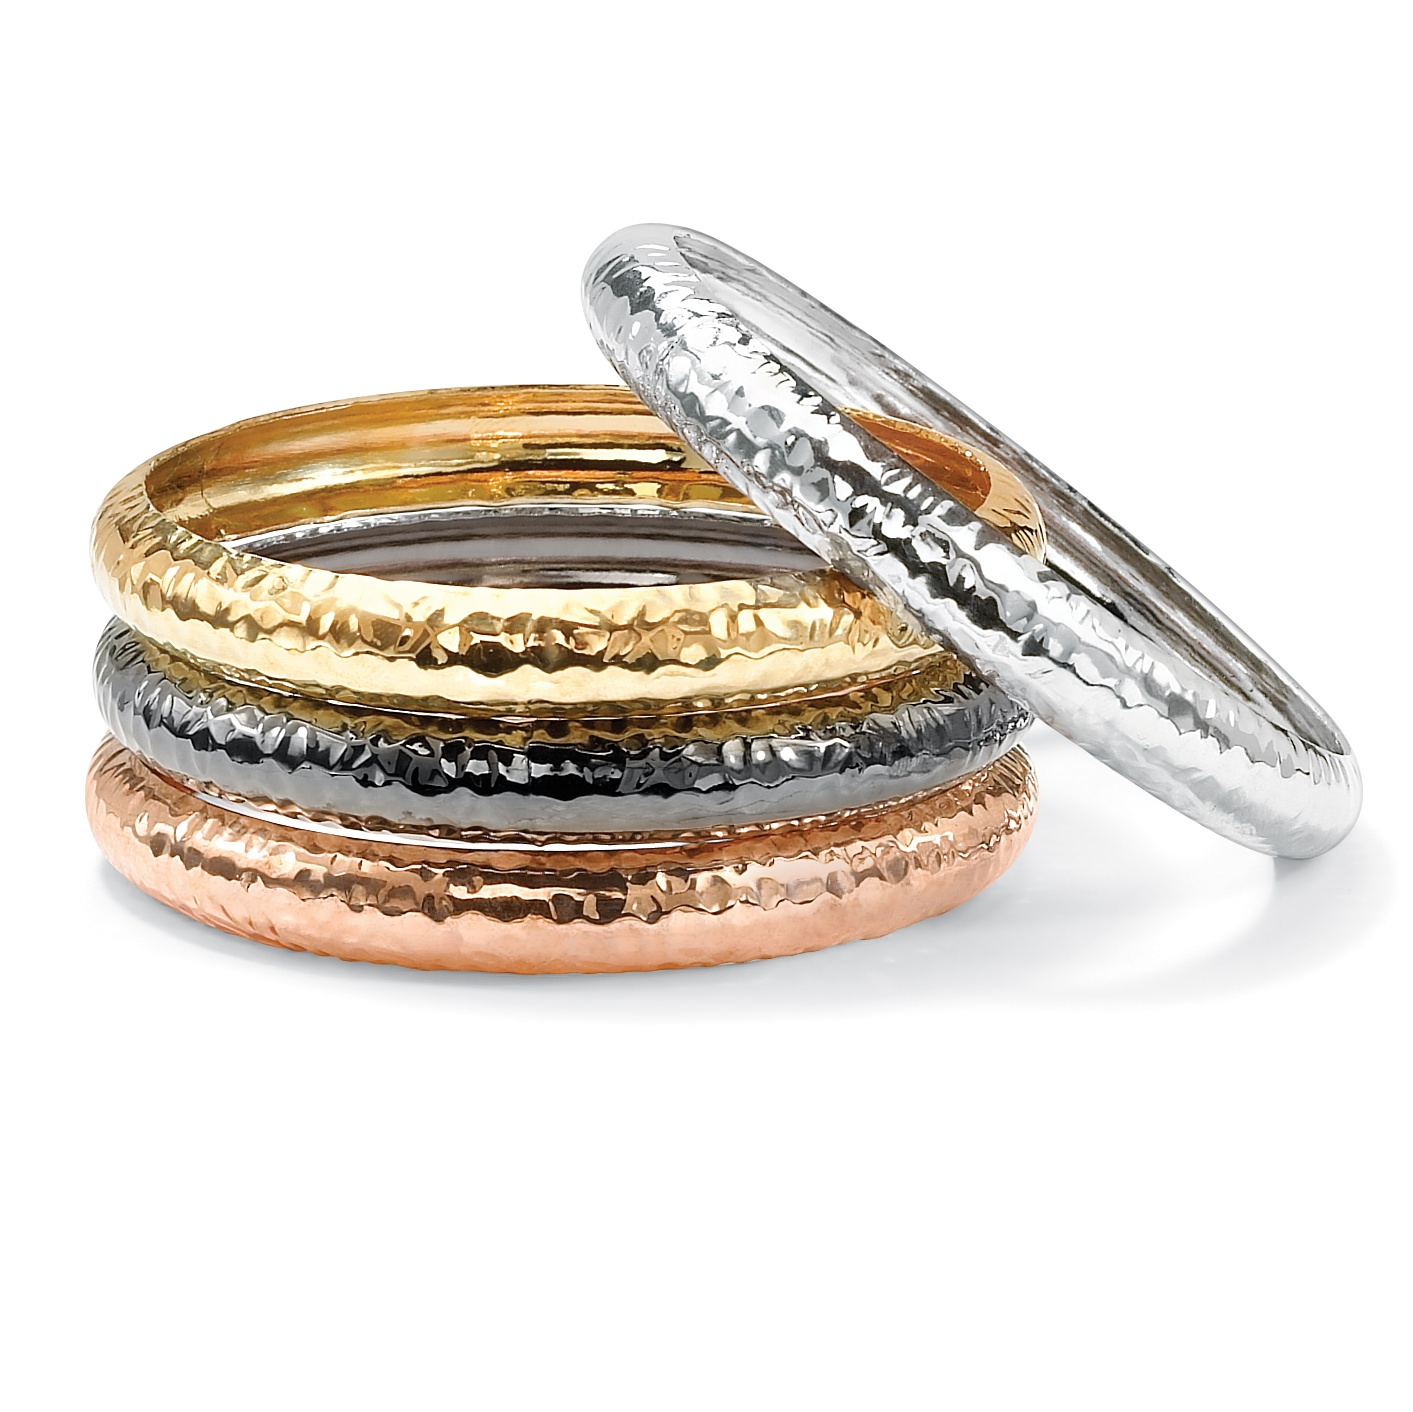 Gold Tone, Silvertone, Rose Gold-Plated Black Rhodium-Plated Hammered 4-Piece Bangle Bracelet Set